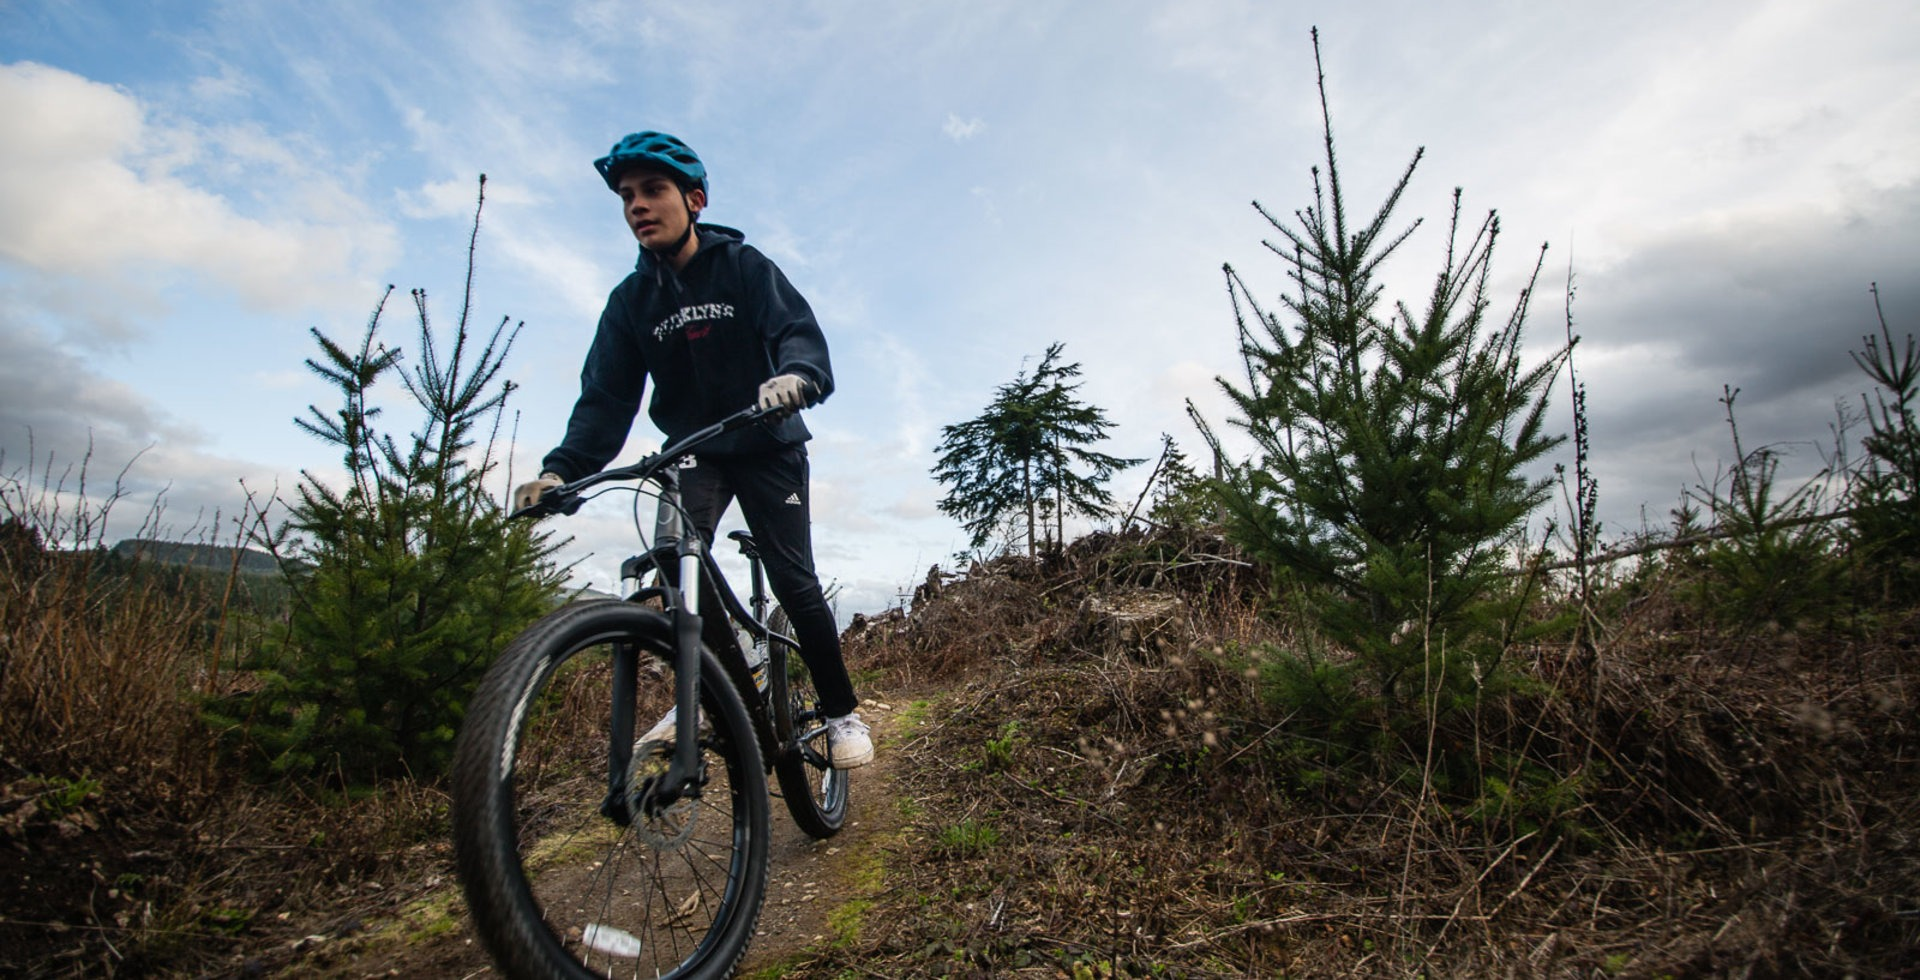 Bellingham's Galbraith Mountain offers no shortage of singletrack to explore, and something for everyone, first-timers to pros. Photo: Maggie Kaiserman